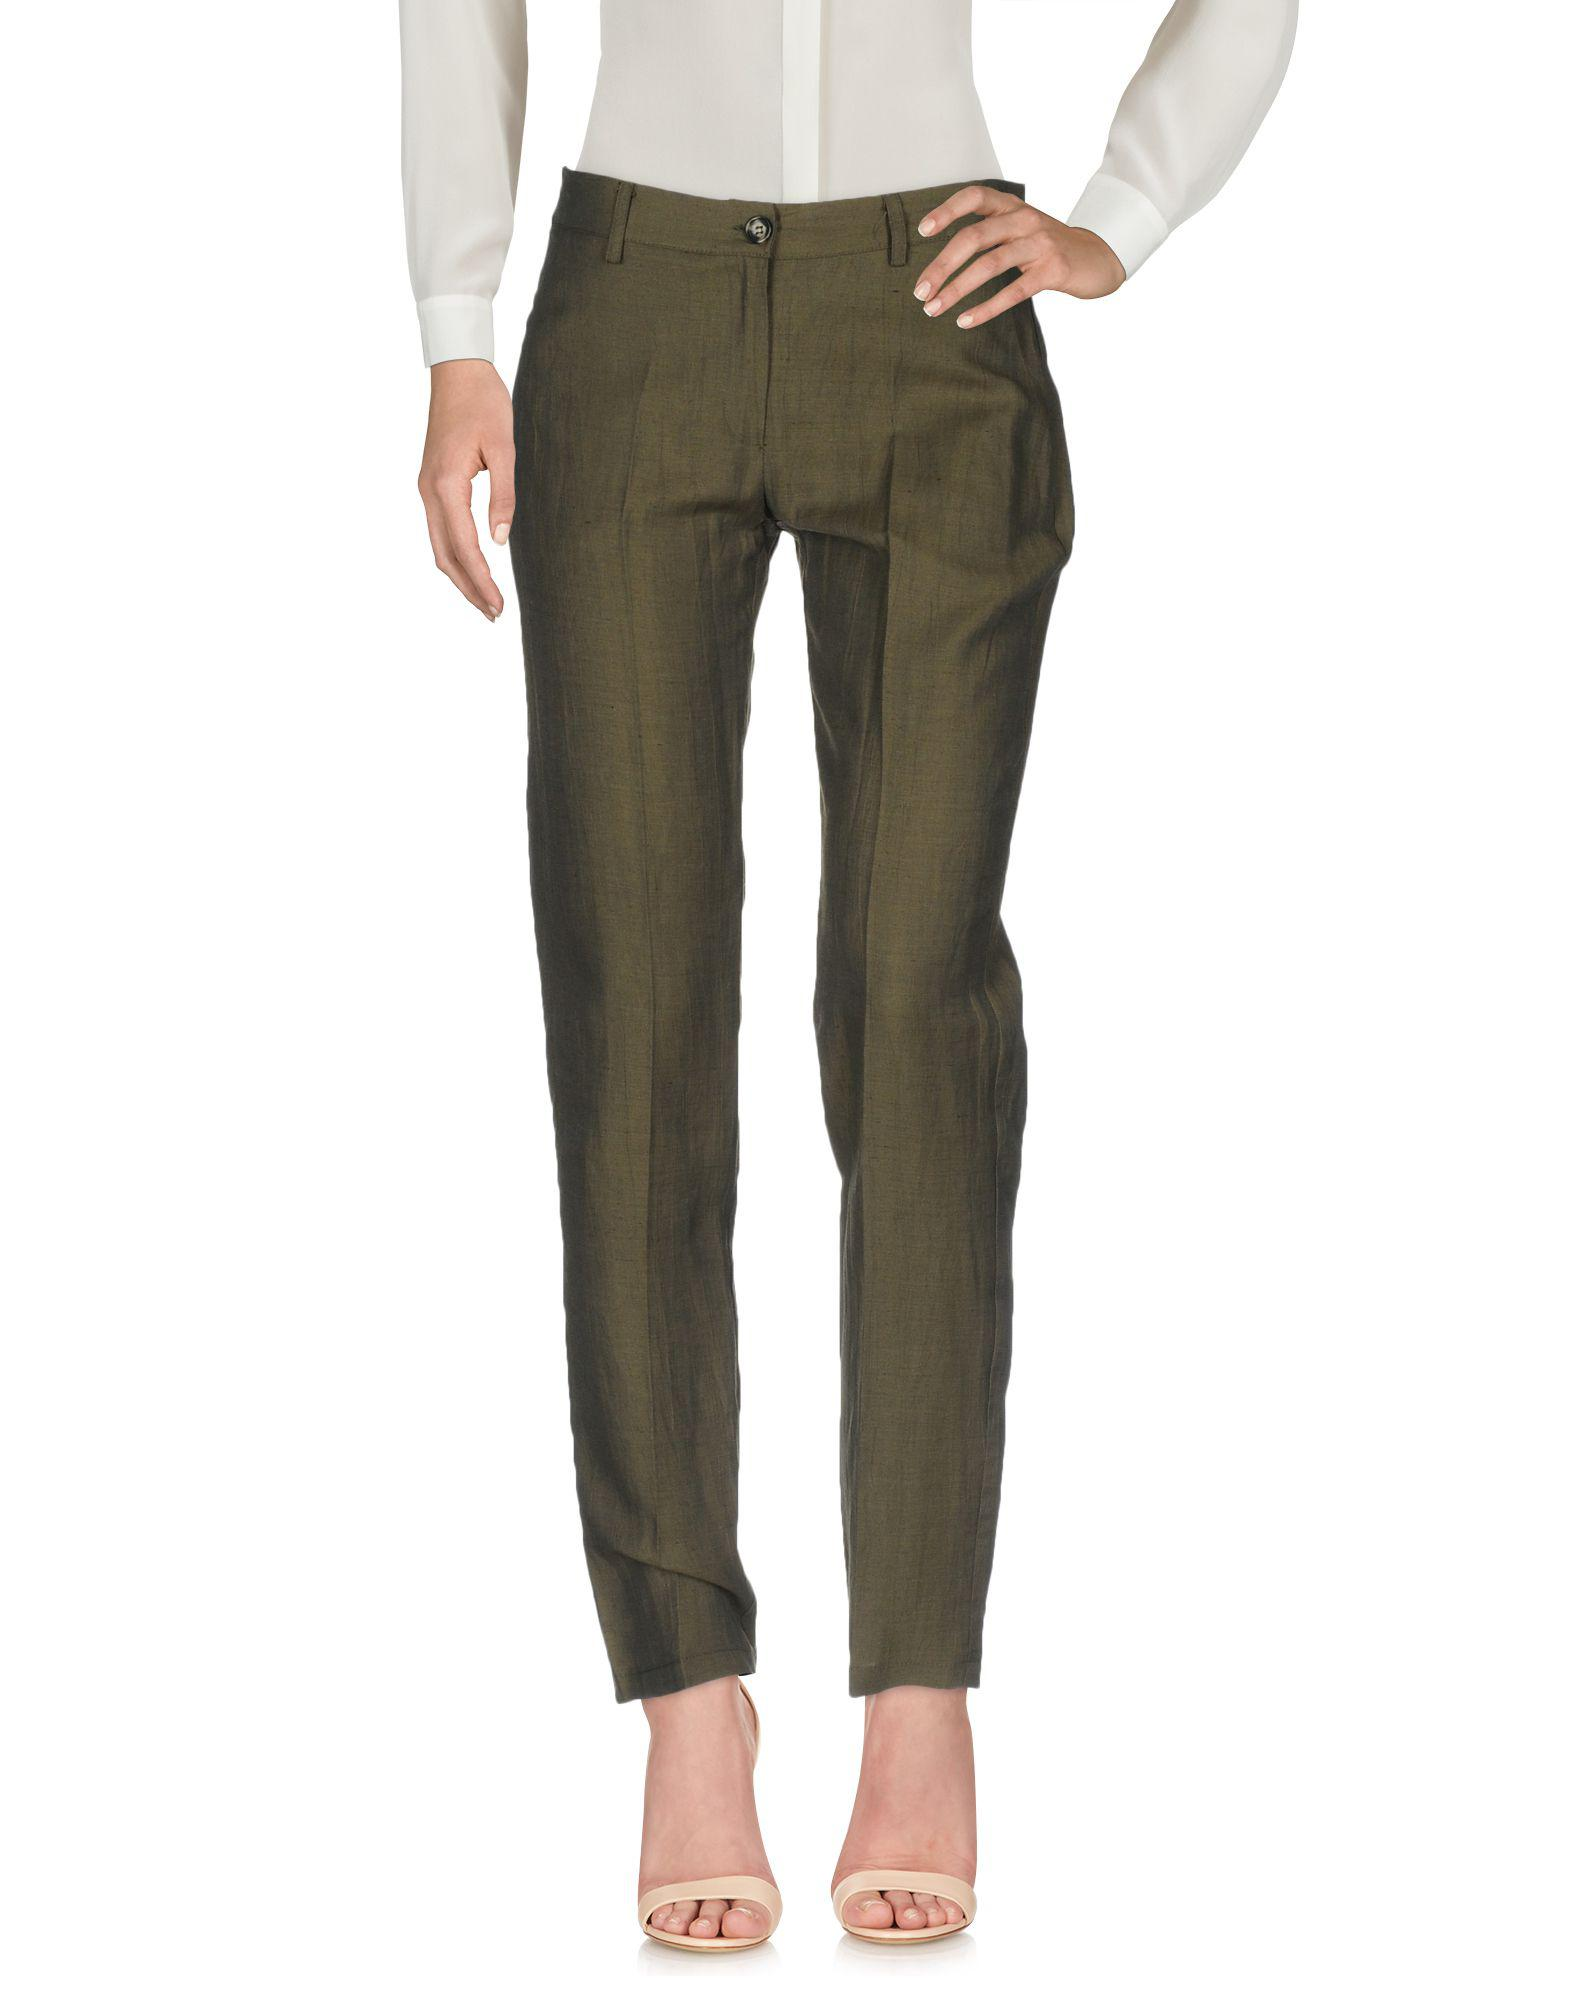 TROUSERS - Casual trousers Cristina Gavioli Buy Cheap Low Price Fee Shipping 8p3g8